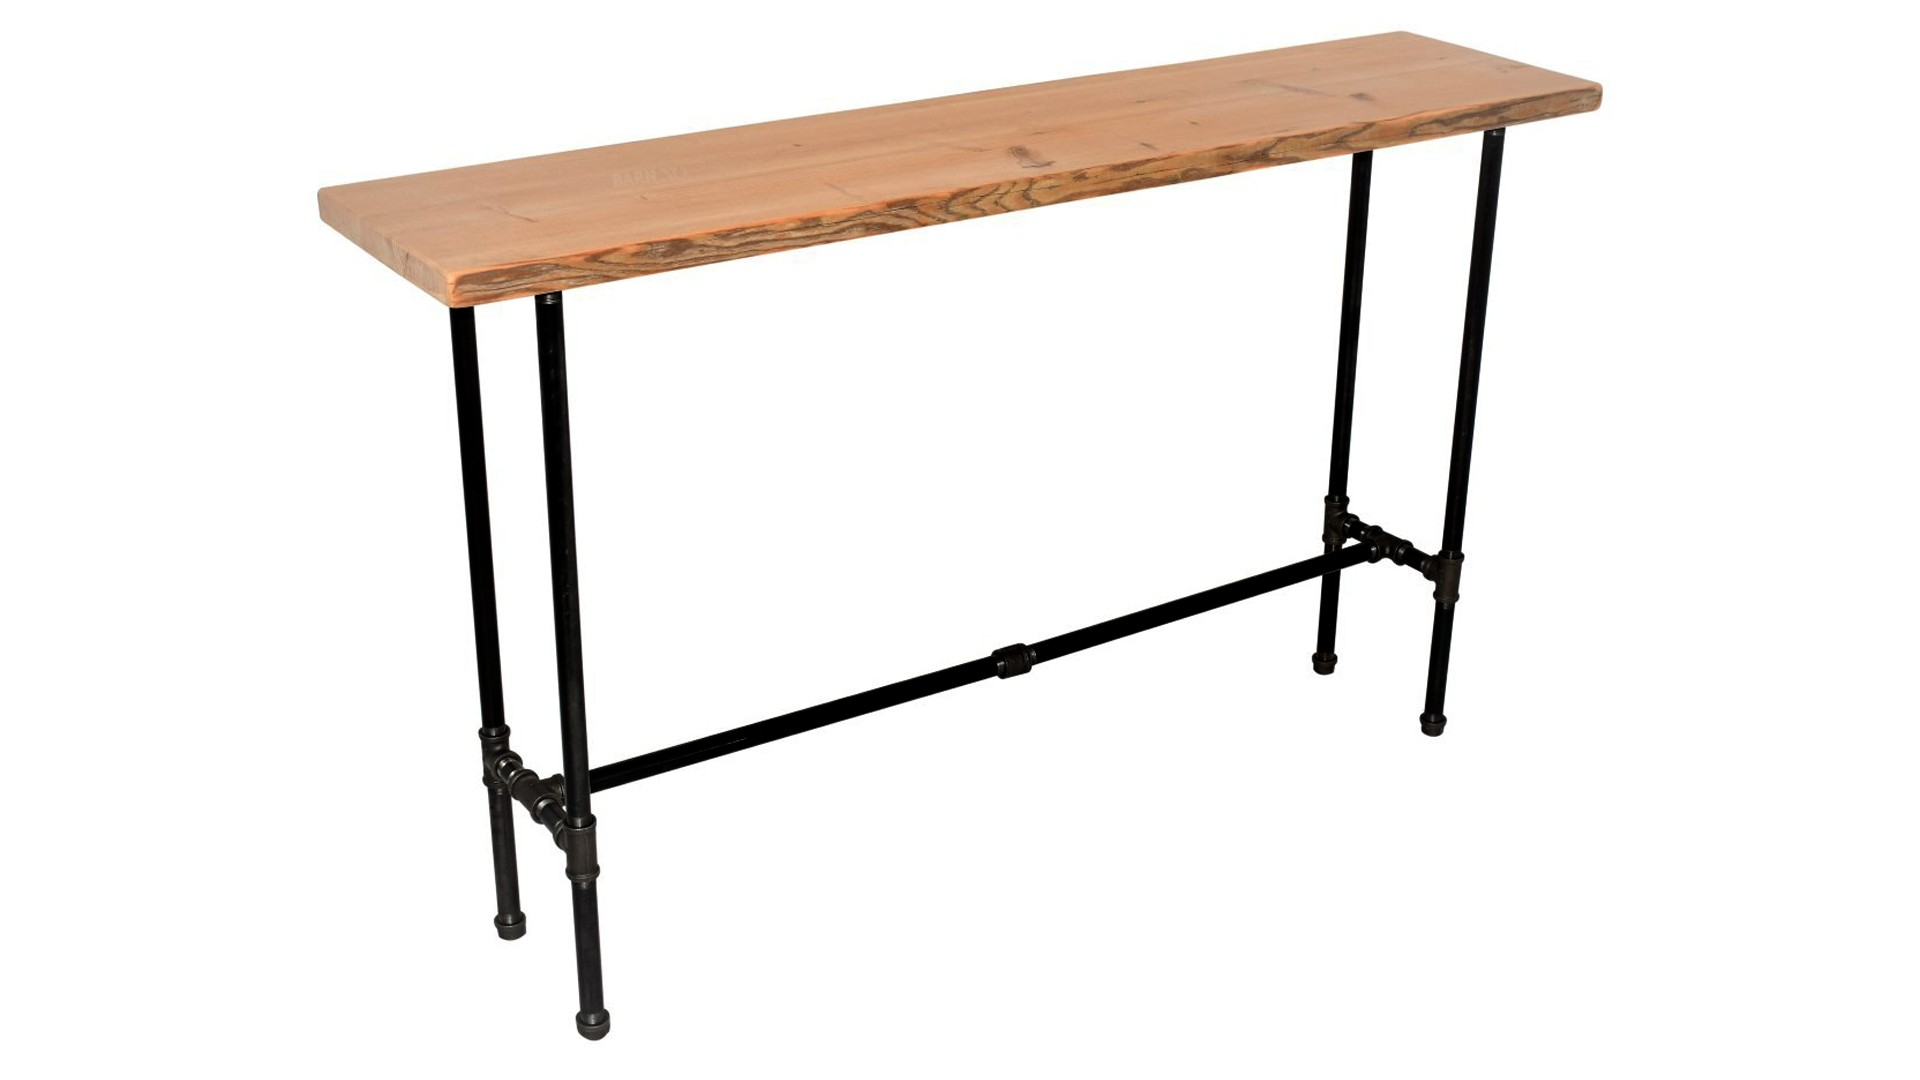 Modern Console Table with Cross Bar